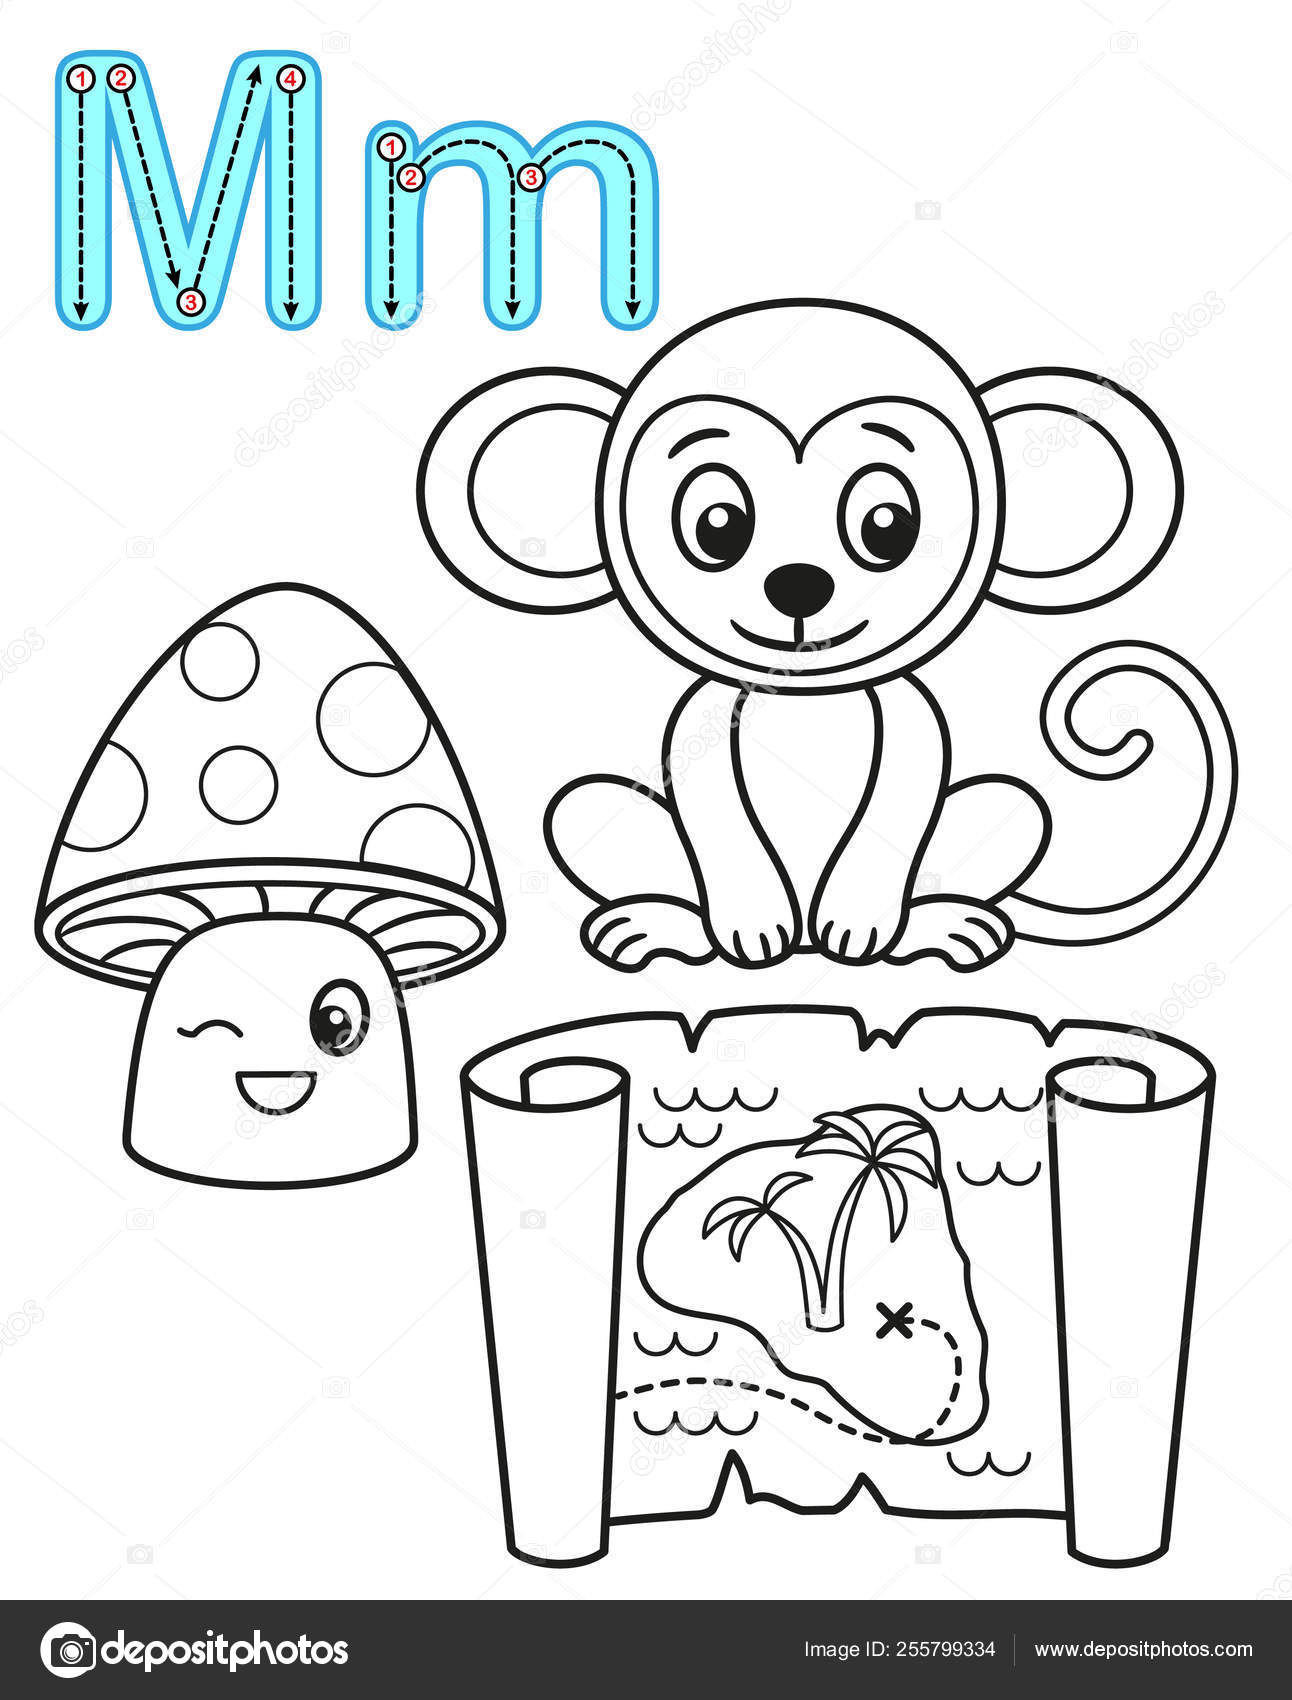 Printable Coloring Page For Kindergarten And Preschool Card For Study English Vector Coloring Book Alphabet Letter M Mushroom Map Monkey Vector Image By C Natasha Tpr Vector Stock 255799334